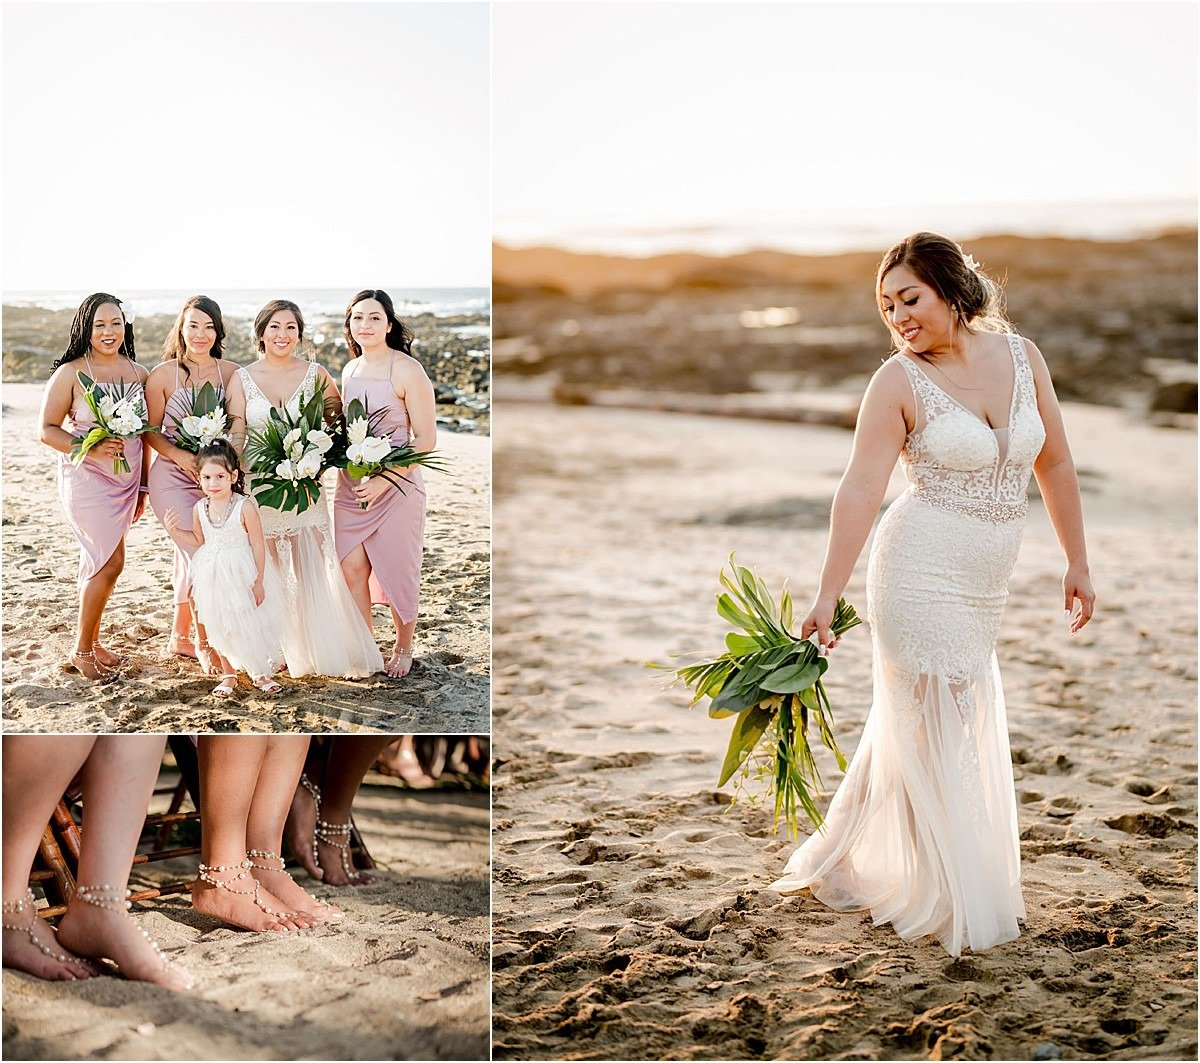 bridesmaids without shoes and wear bracelets instead